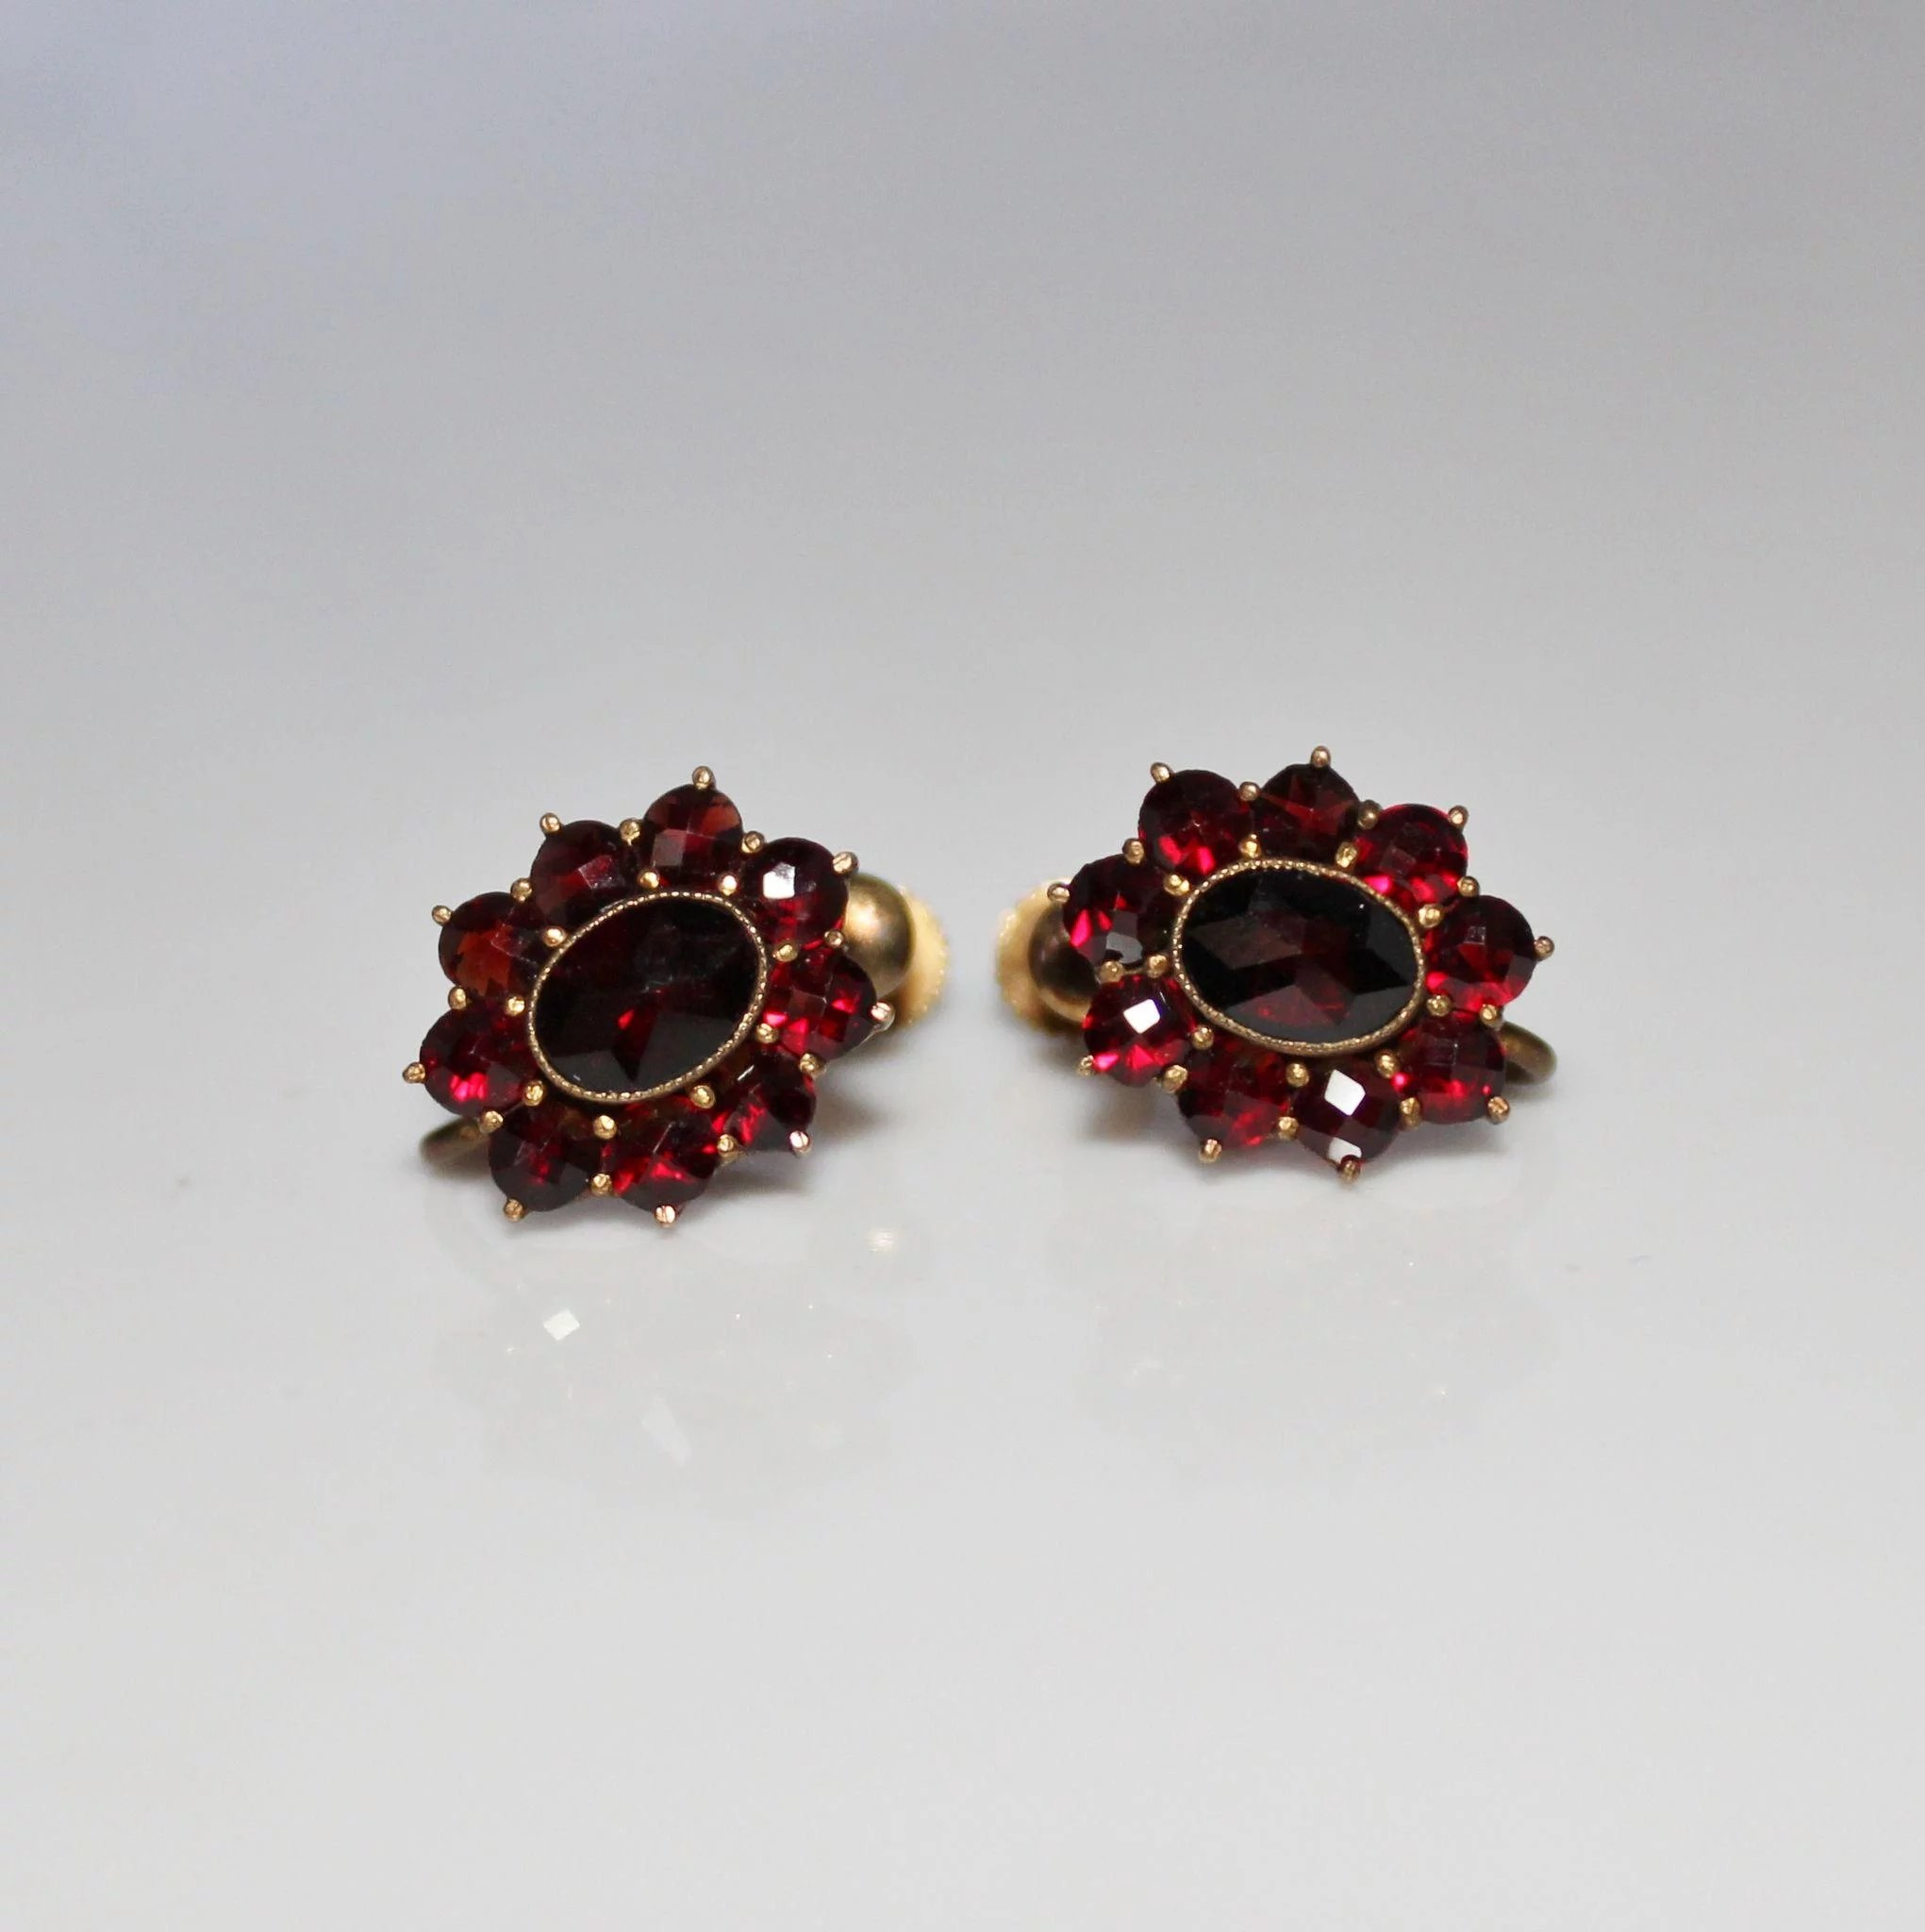 of sterling earrings grams the earring jewellery a jewelry approx each oval contemporary fine measures this very weighs silver garnet img in stud pair diamond is